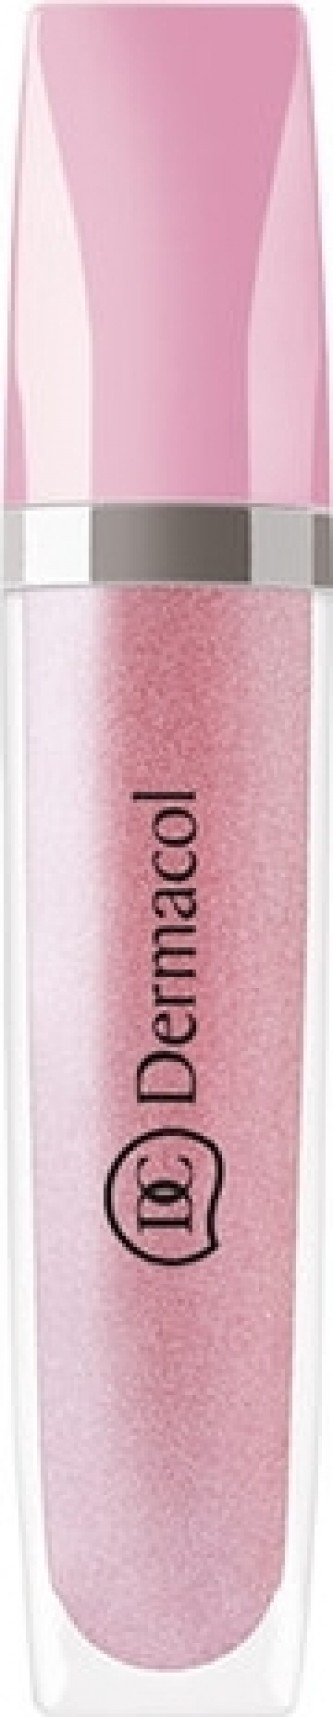 Dermacol Shimmering Lip Gloss 8 ml 8